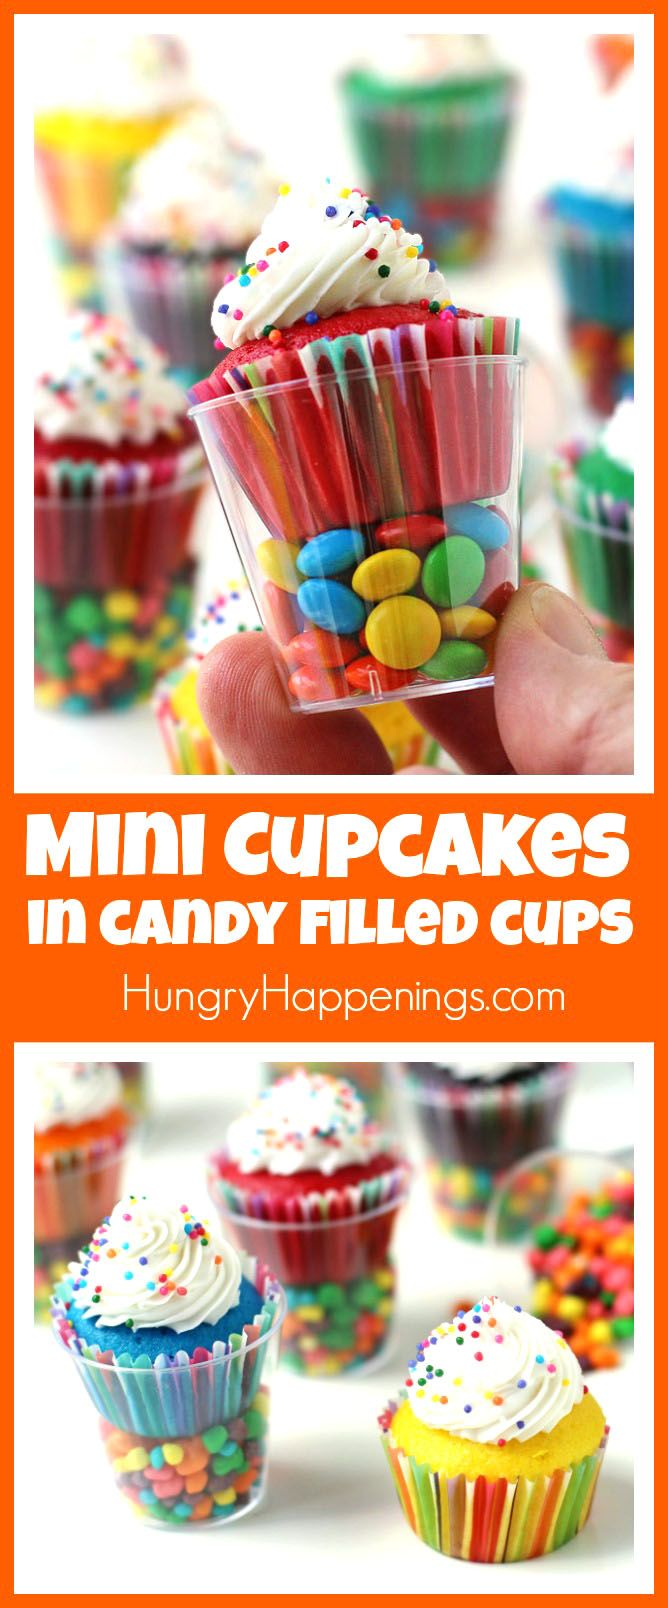 Serve Mini Cupcakes in Candy Filled Shot Glasses at your kid's birthday party or special event. They are quick and easy to make and fun to serve.